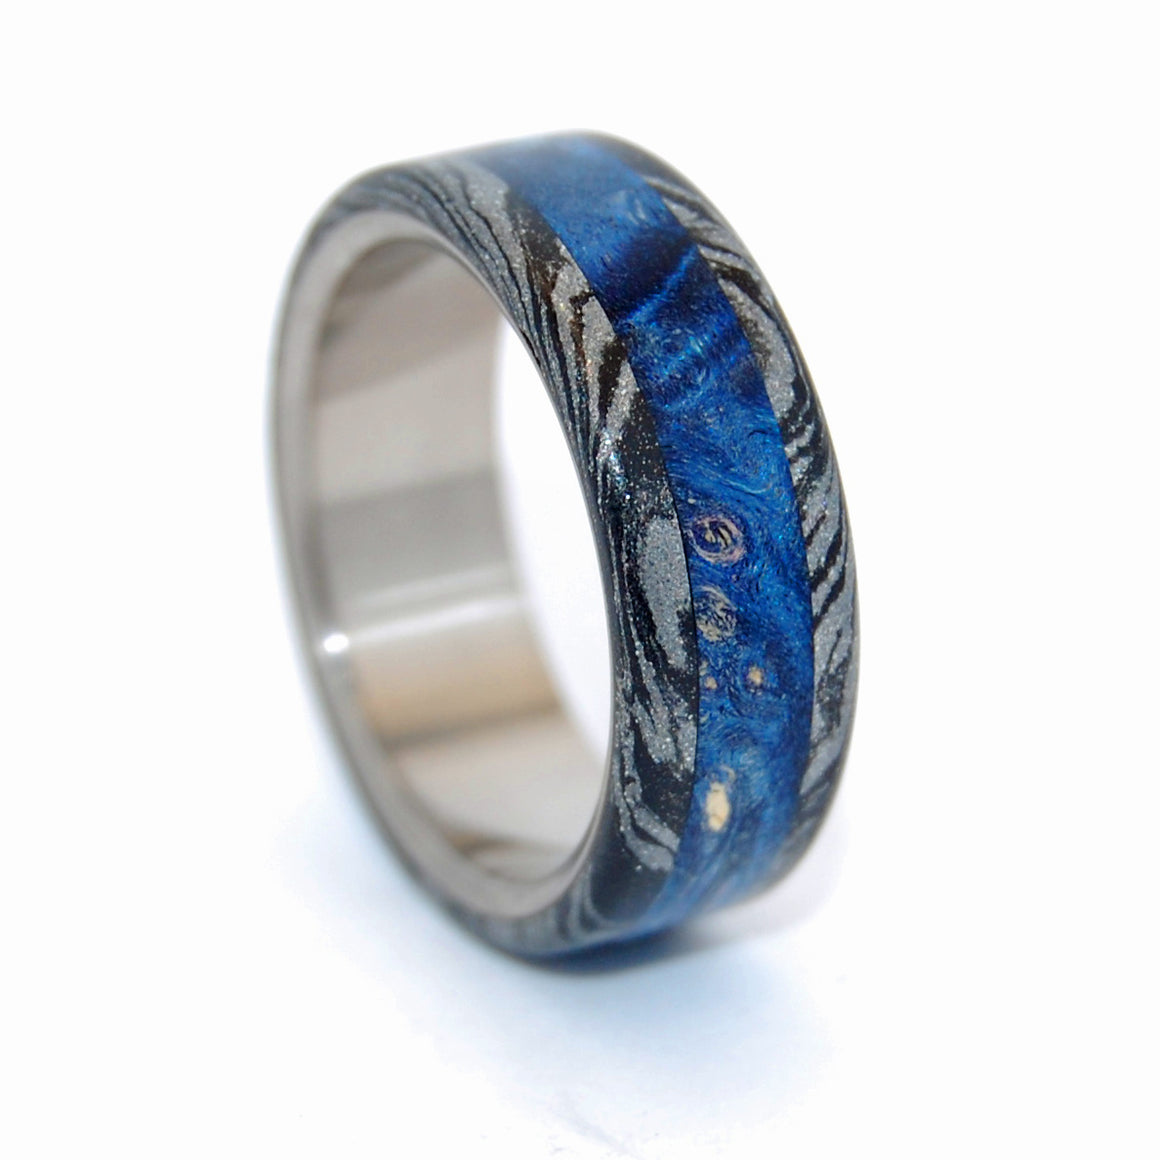 GREEK GOD | Dark Blue Wood & M3 Black Titanium Wedding Rings - Minter and Richter Designs